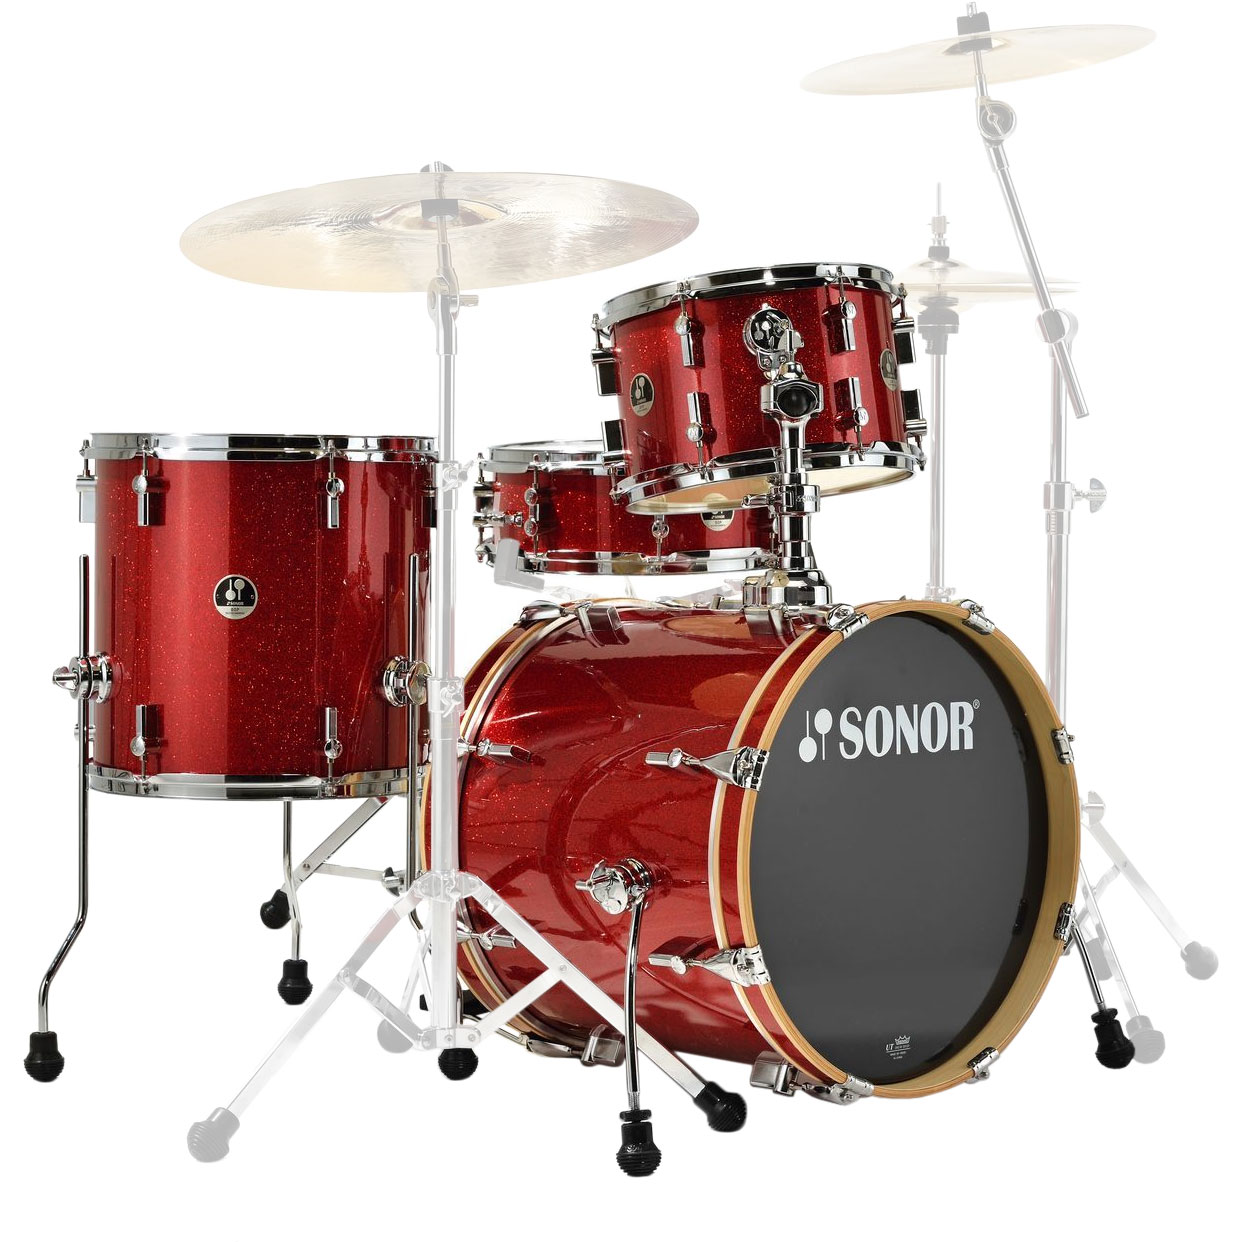 "Sonor Special Edition Bop 4-Piece Drum Set Shell Pack (18"" Bass, 12/14"" Toms, 14"" Snare) in Red Galaxy Sparkle"